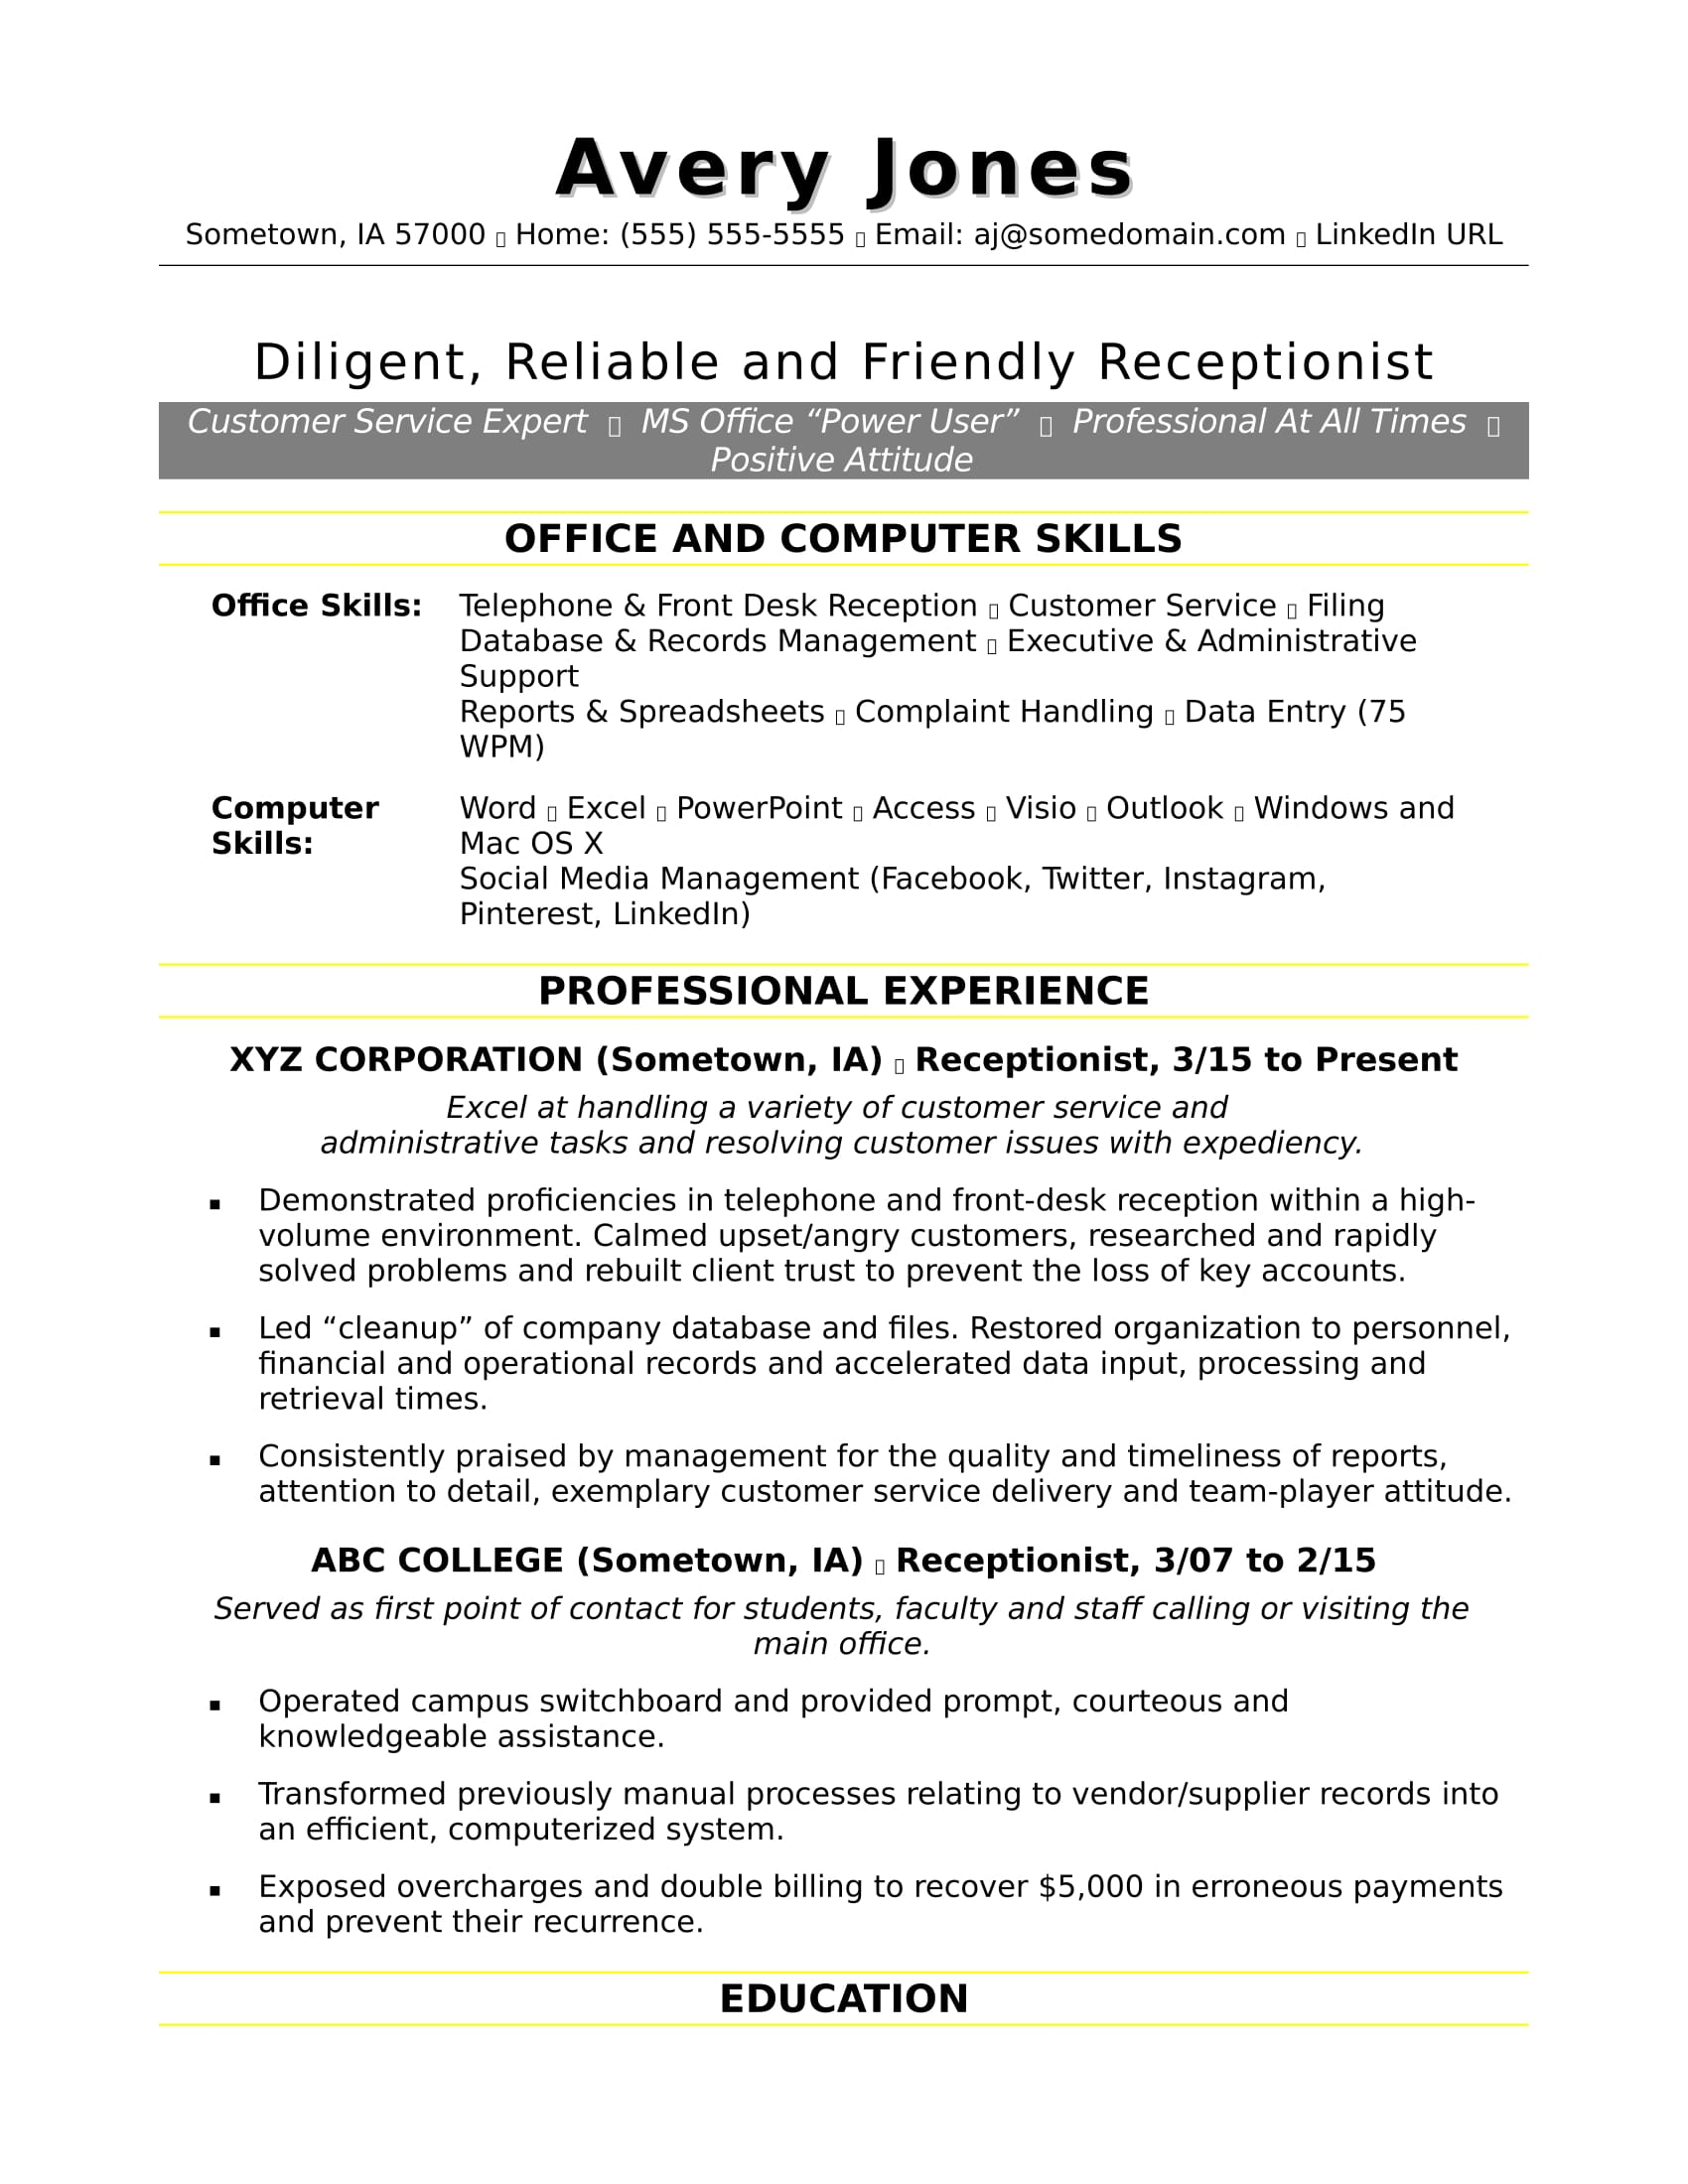 Sample Resume For A Receptionist  Good Words To Use On A Resume